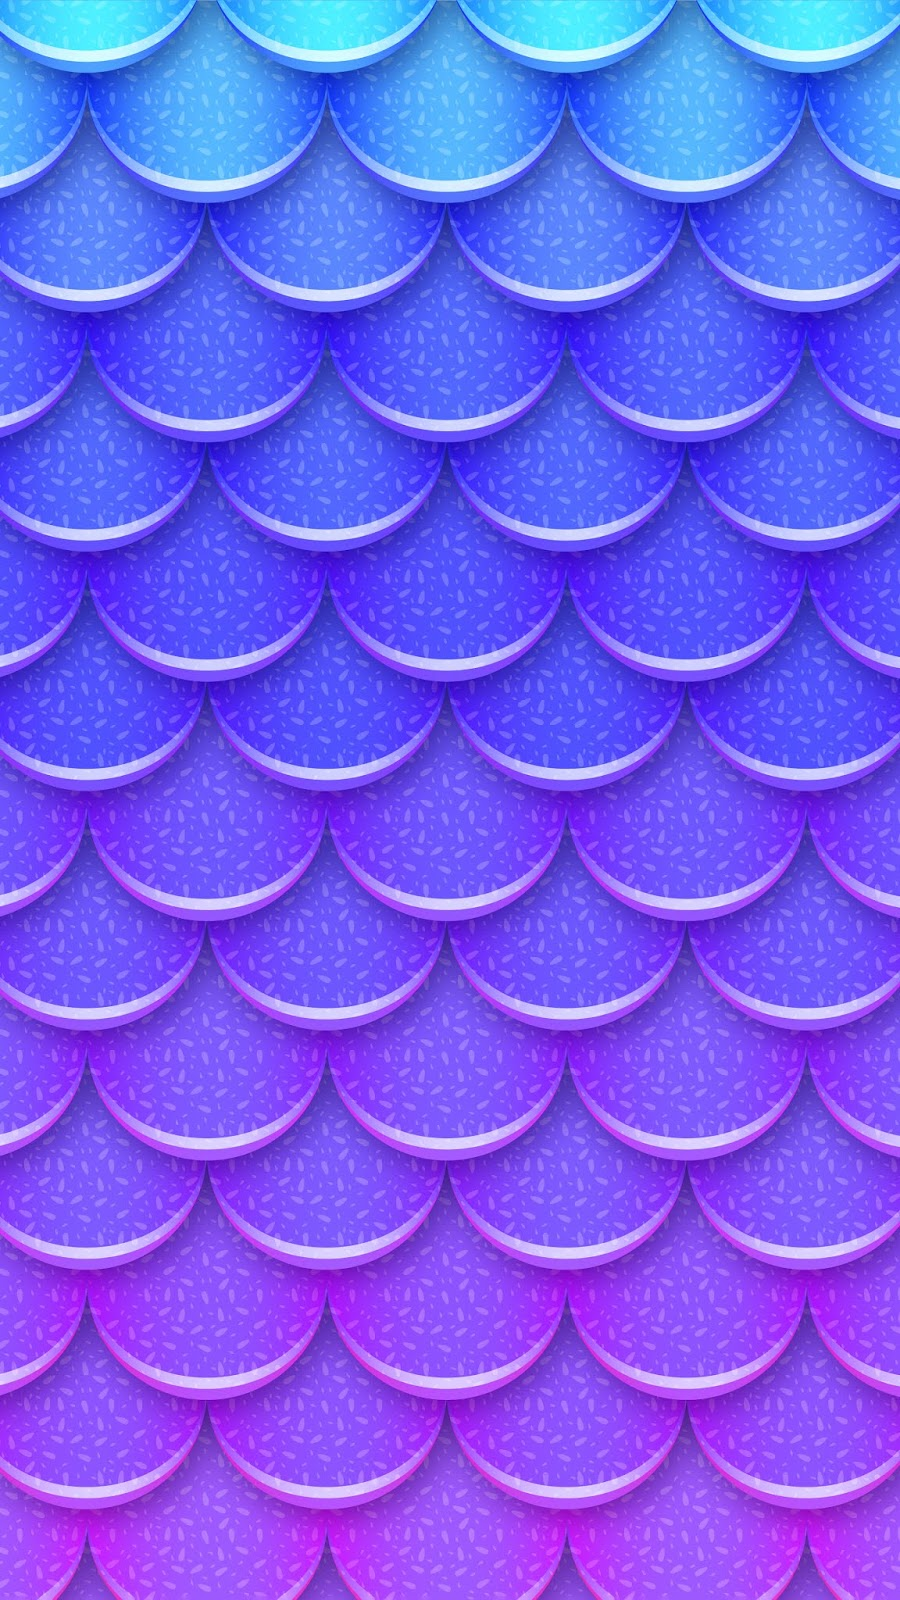 aesthetic holographic purple and blue background wallpaper in 4k vertical resolution